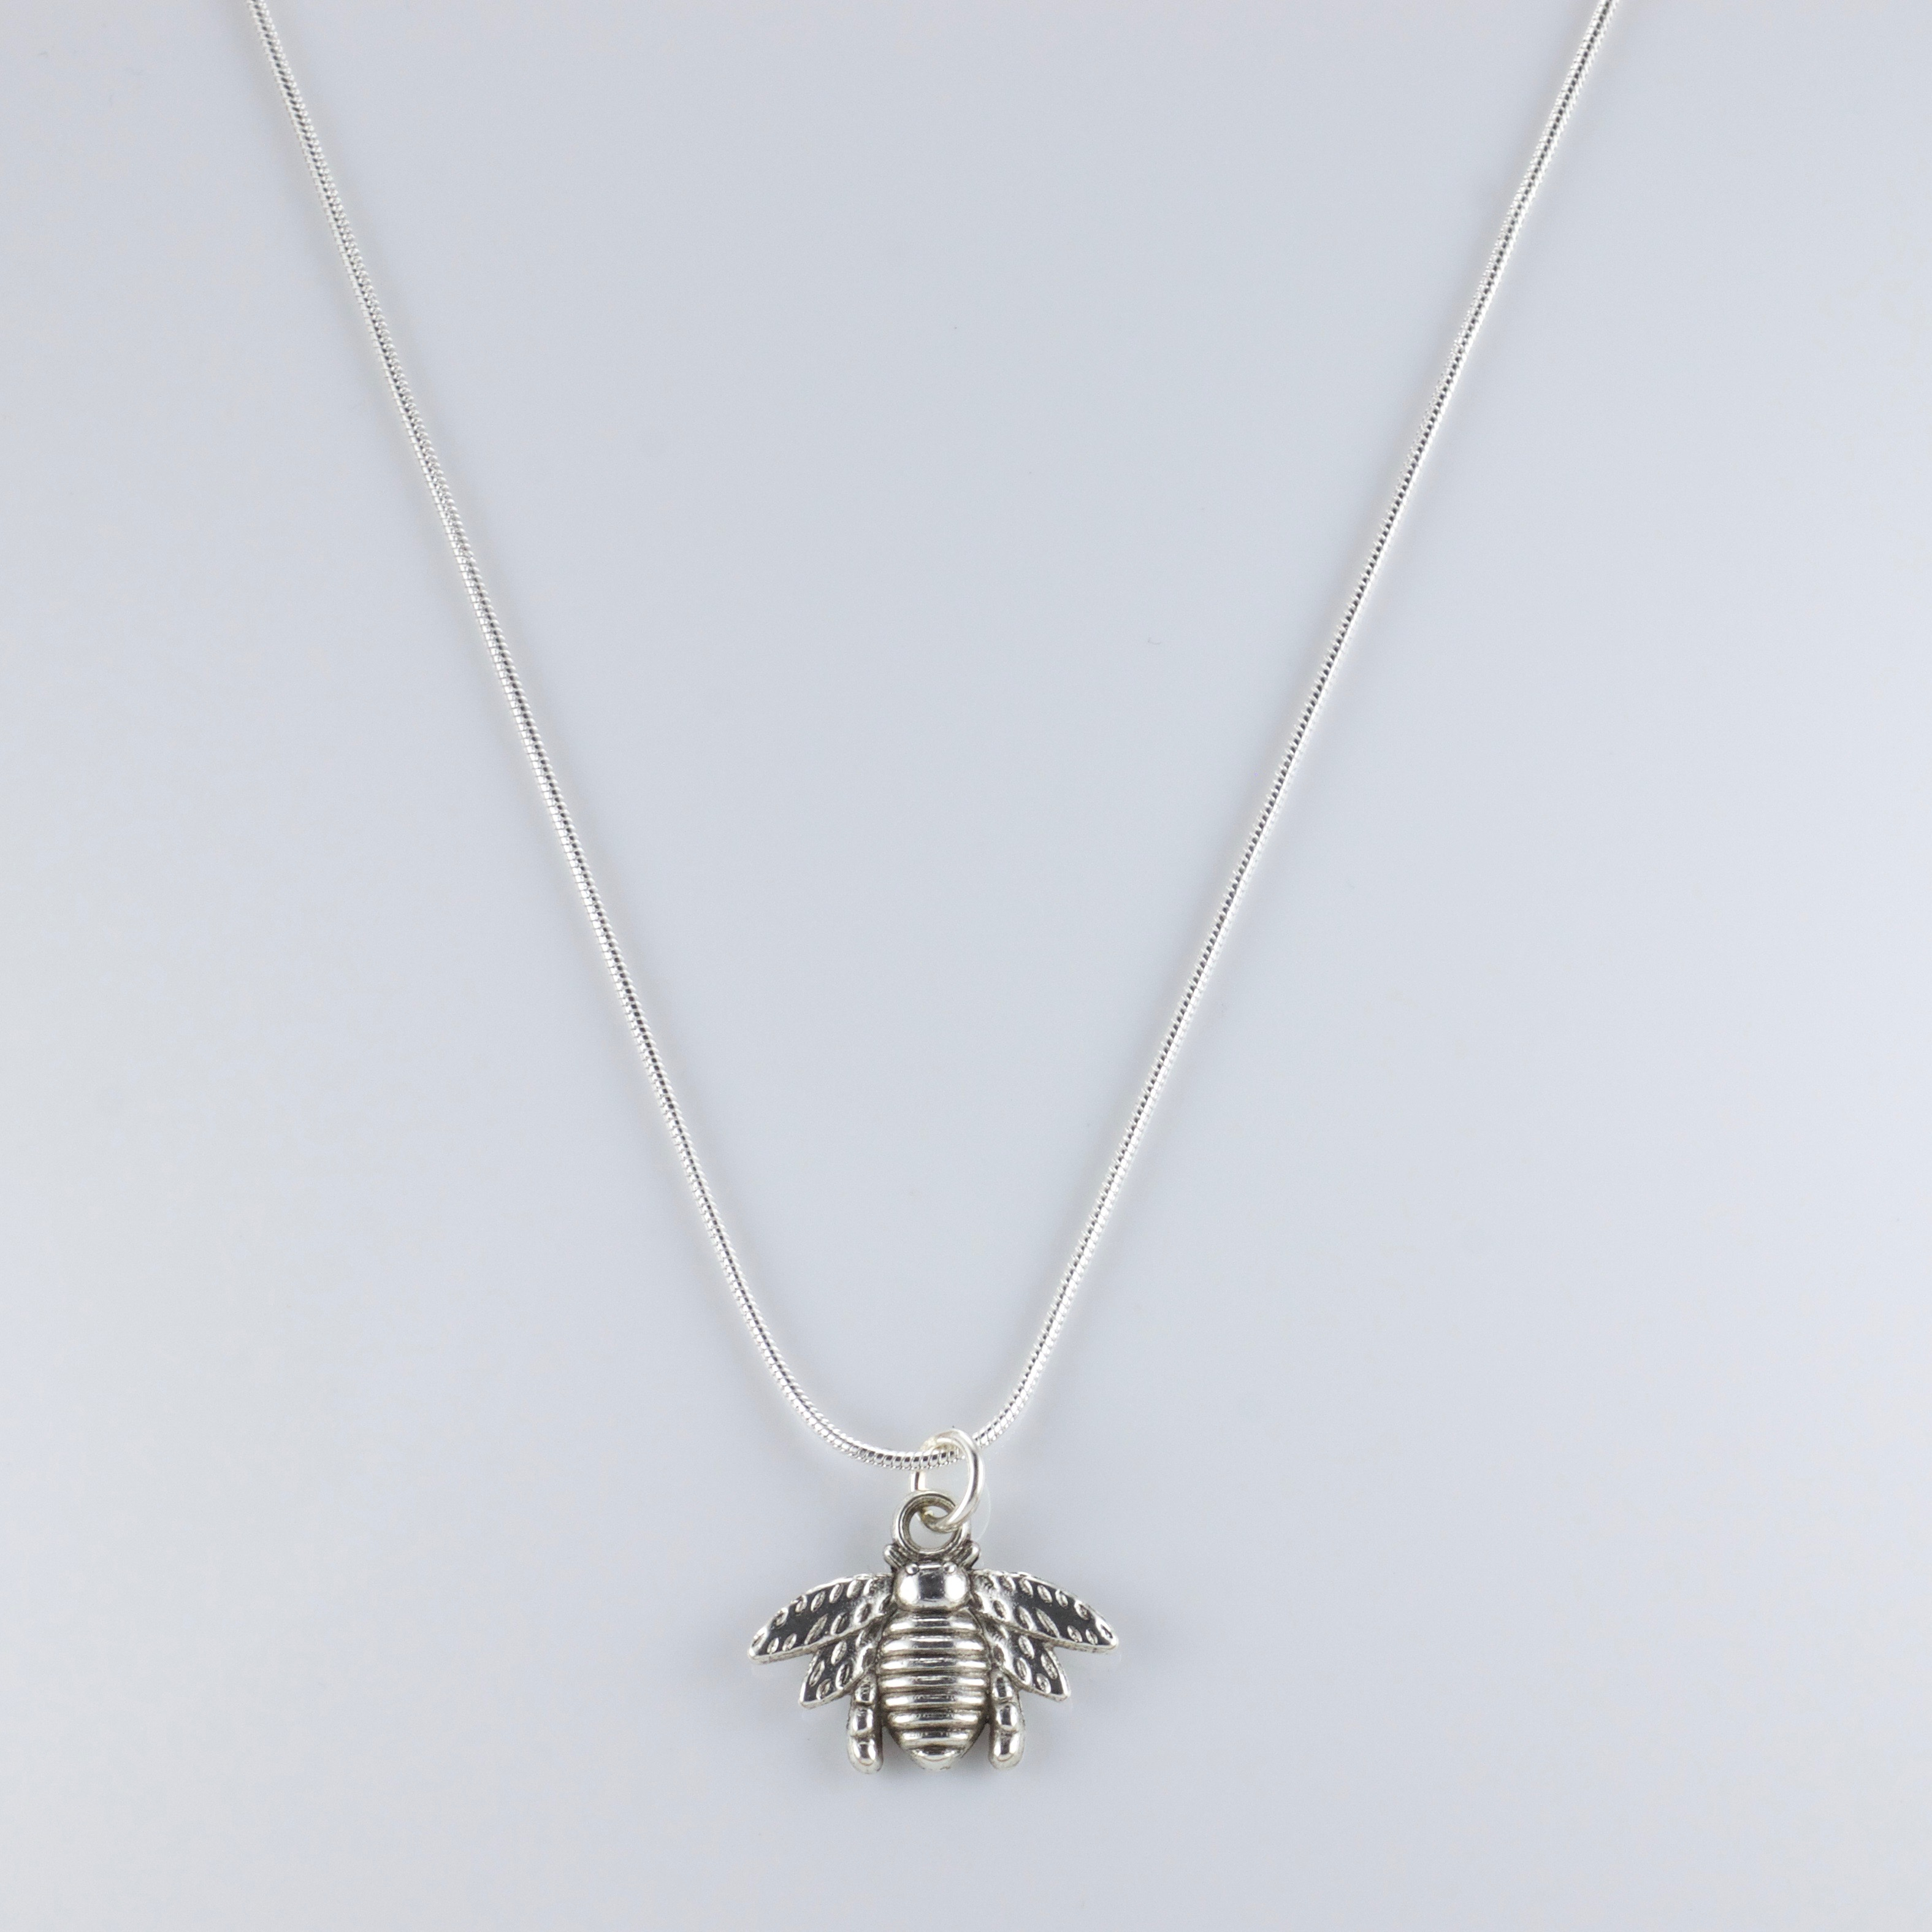 *$25 SALE!* Tyler The Creator Flower Boy Bee Silver Necklace 20